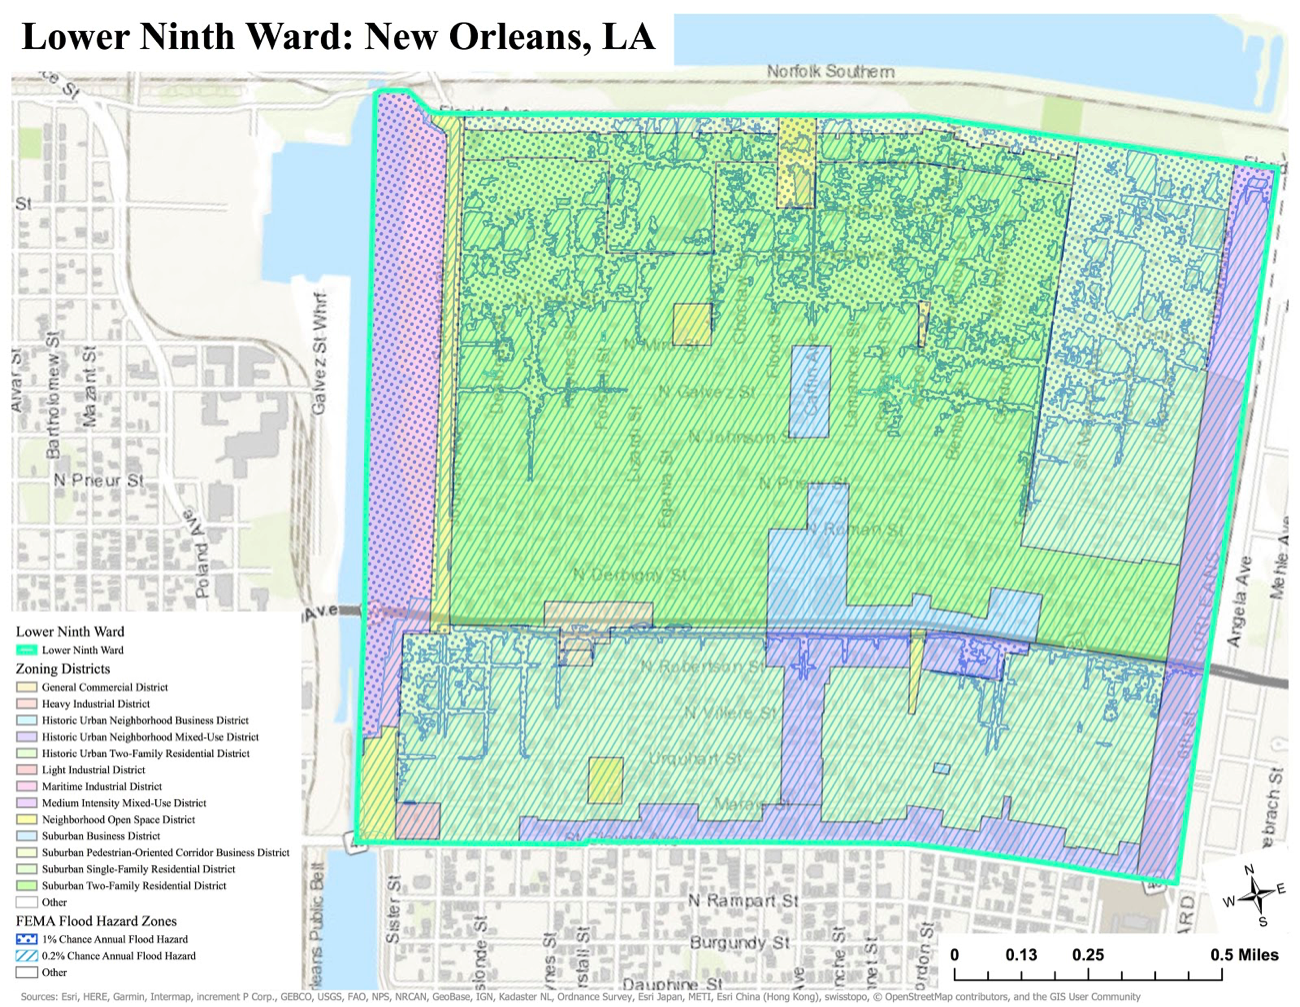 Esri ArcGIS Pro, City of New Orleans, FEMA, USGS, Scale: 1:17,000